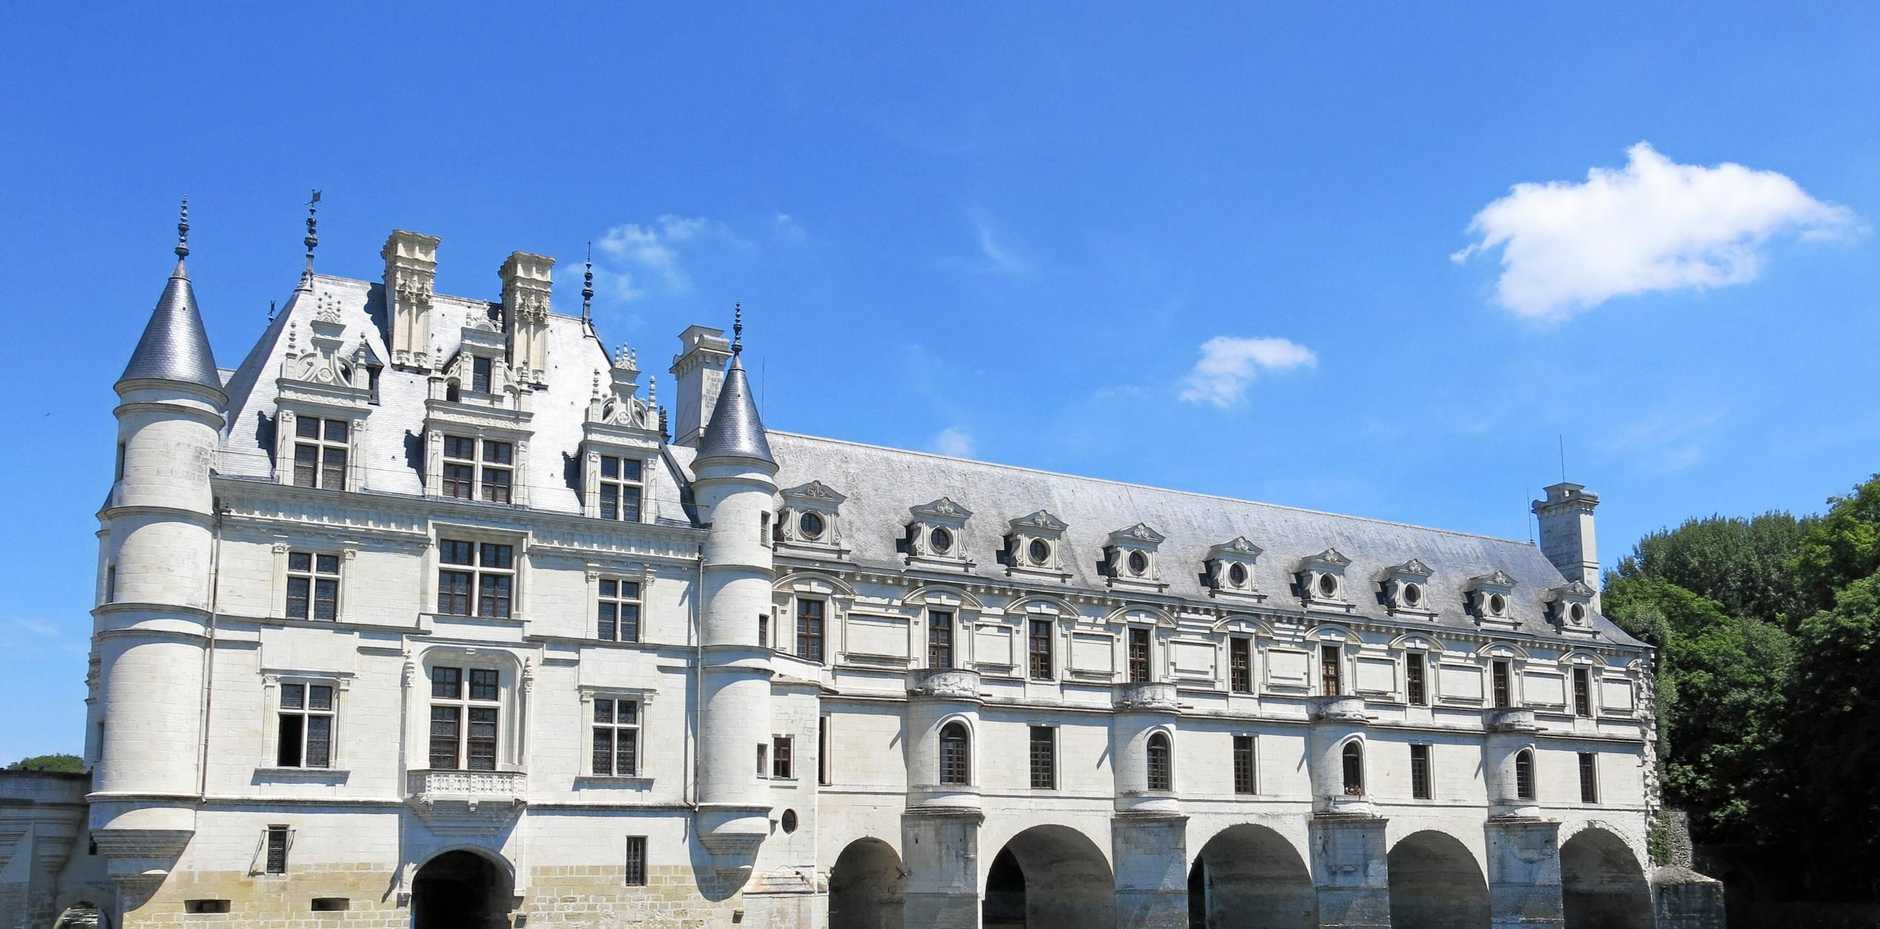 FRENCH CONNECTION: Chateau de Chenonceau, spanning the River Cher, near the village of Chenonceaux, France.